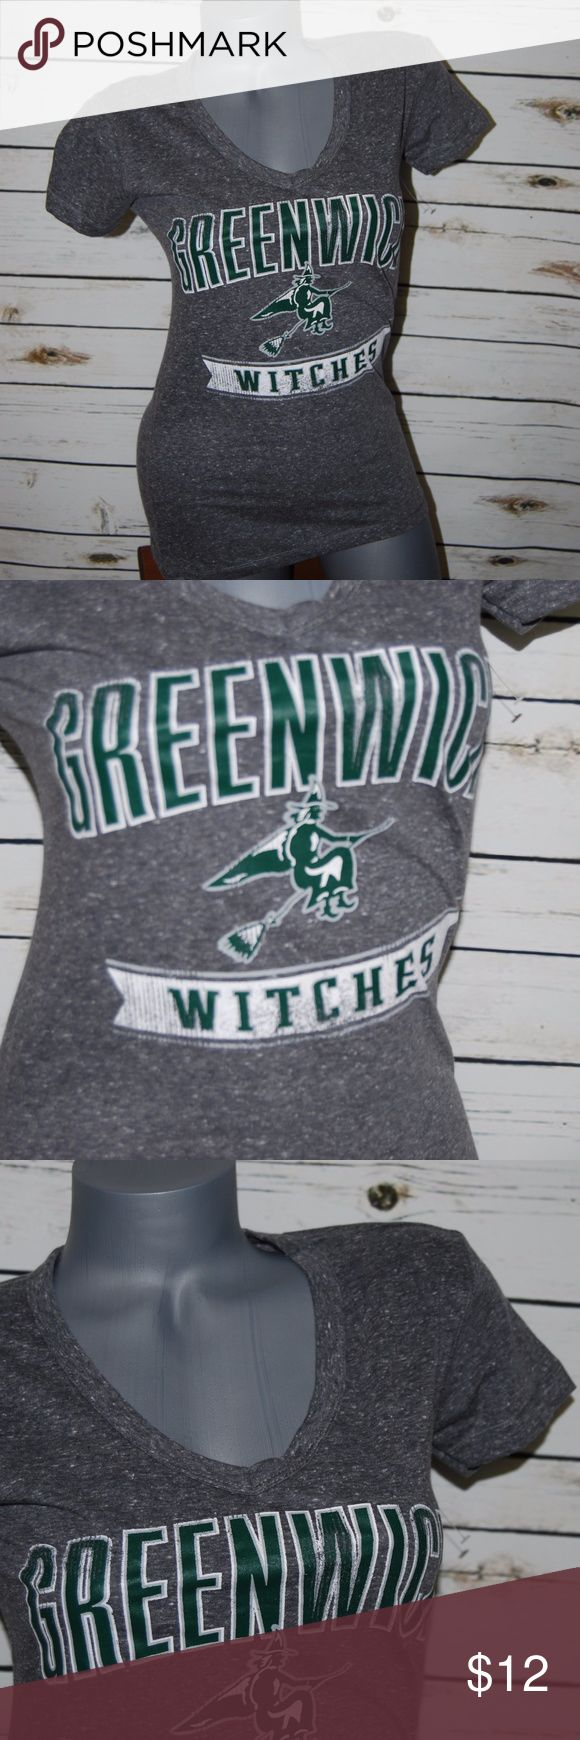 T-shirt Gray Greenwich Witches Small V Neck NWOT Greenwich Witches Size: Small Please see pictures for measurements V Neck Short Sleeve New without Tags Tops Tees - Short Sleeve